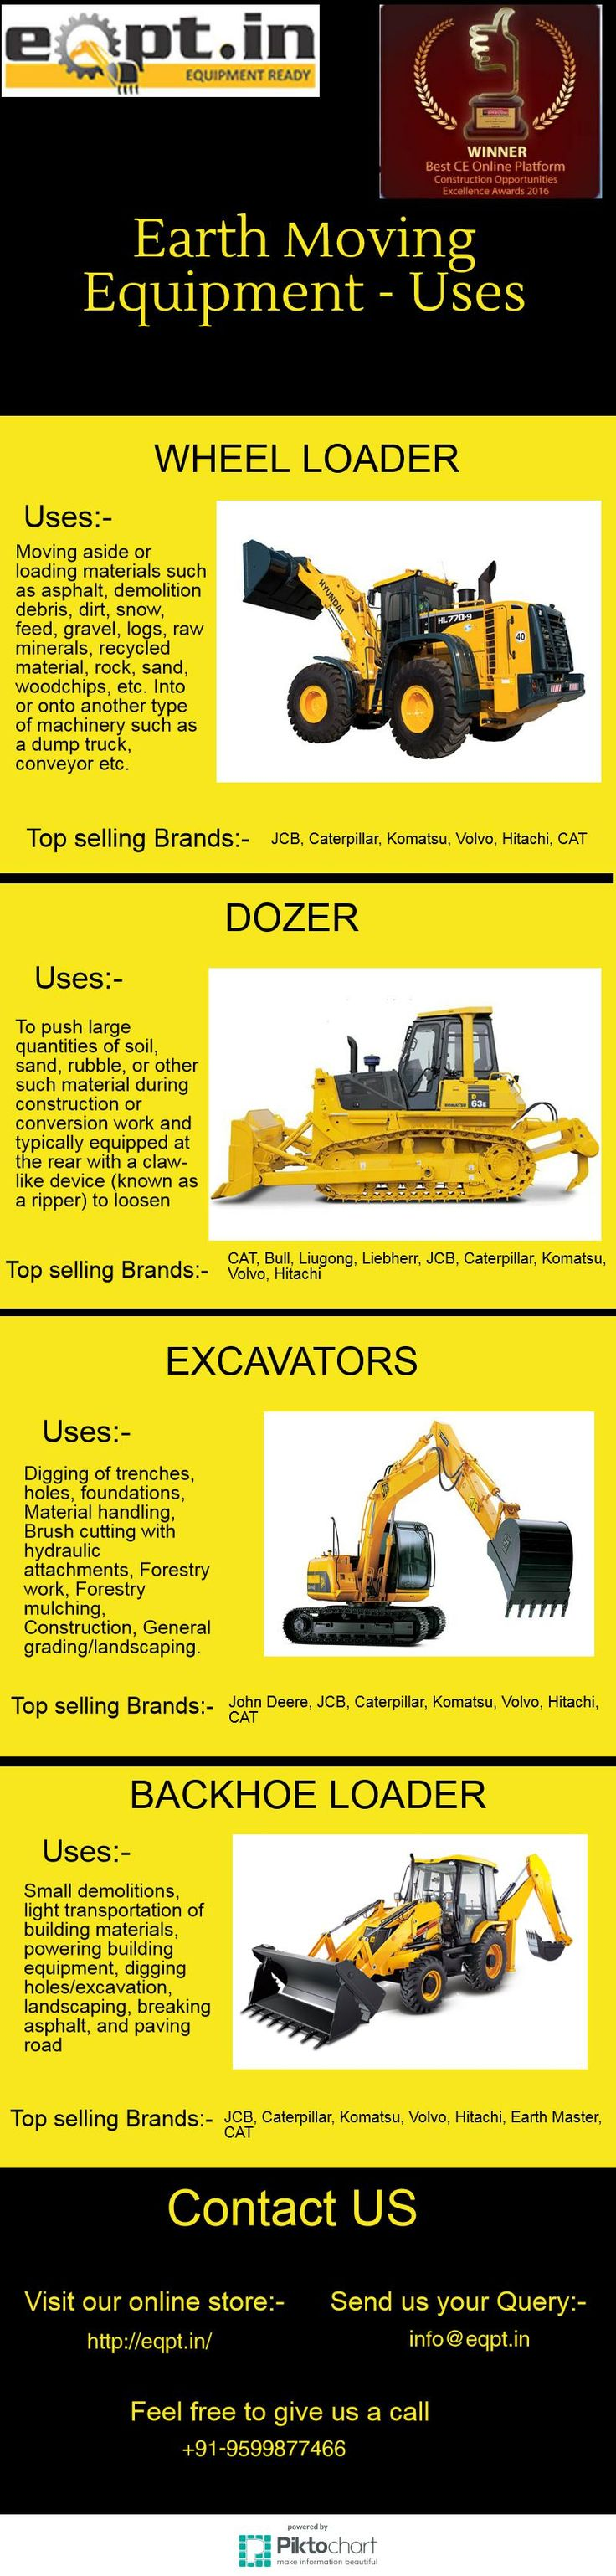 Find Earthmoving Equipment for rent From heavy equipment like backhoes, excavators, and bulldozers, to light equipment like scissor lifts, pumps, and air compressors in your area. Get equipment rental rates and reserve online or contact us @ 9599877466